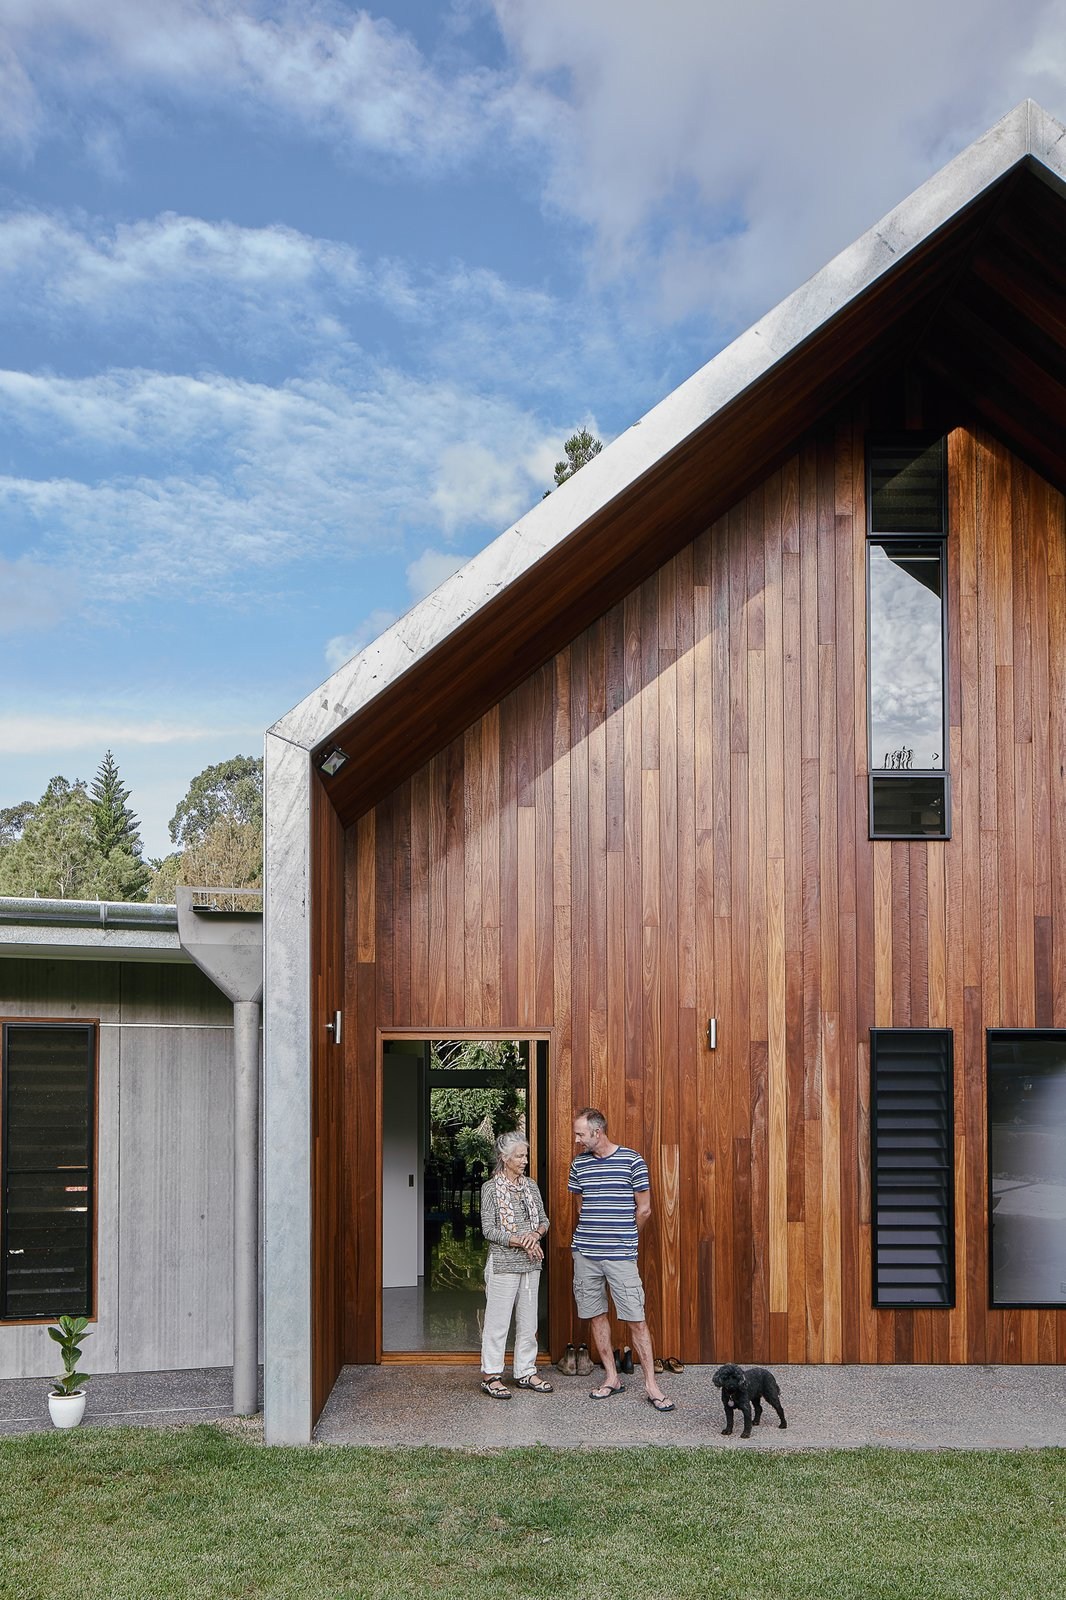 Exterior, House Building Type, Wood Siding Material, Metal Roof Material, Gable RoofLine, and Metal Siding Material Australian spotted gum wood was used for sections of the exterior wall.  Photo 9 of 19 in Two Barn-Like Volumes Make Up This Low-Maintenance Australian Home